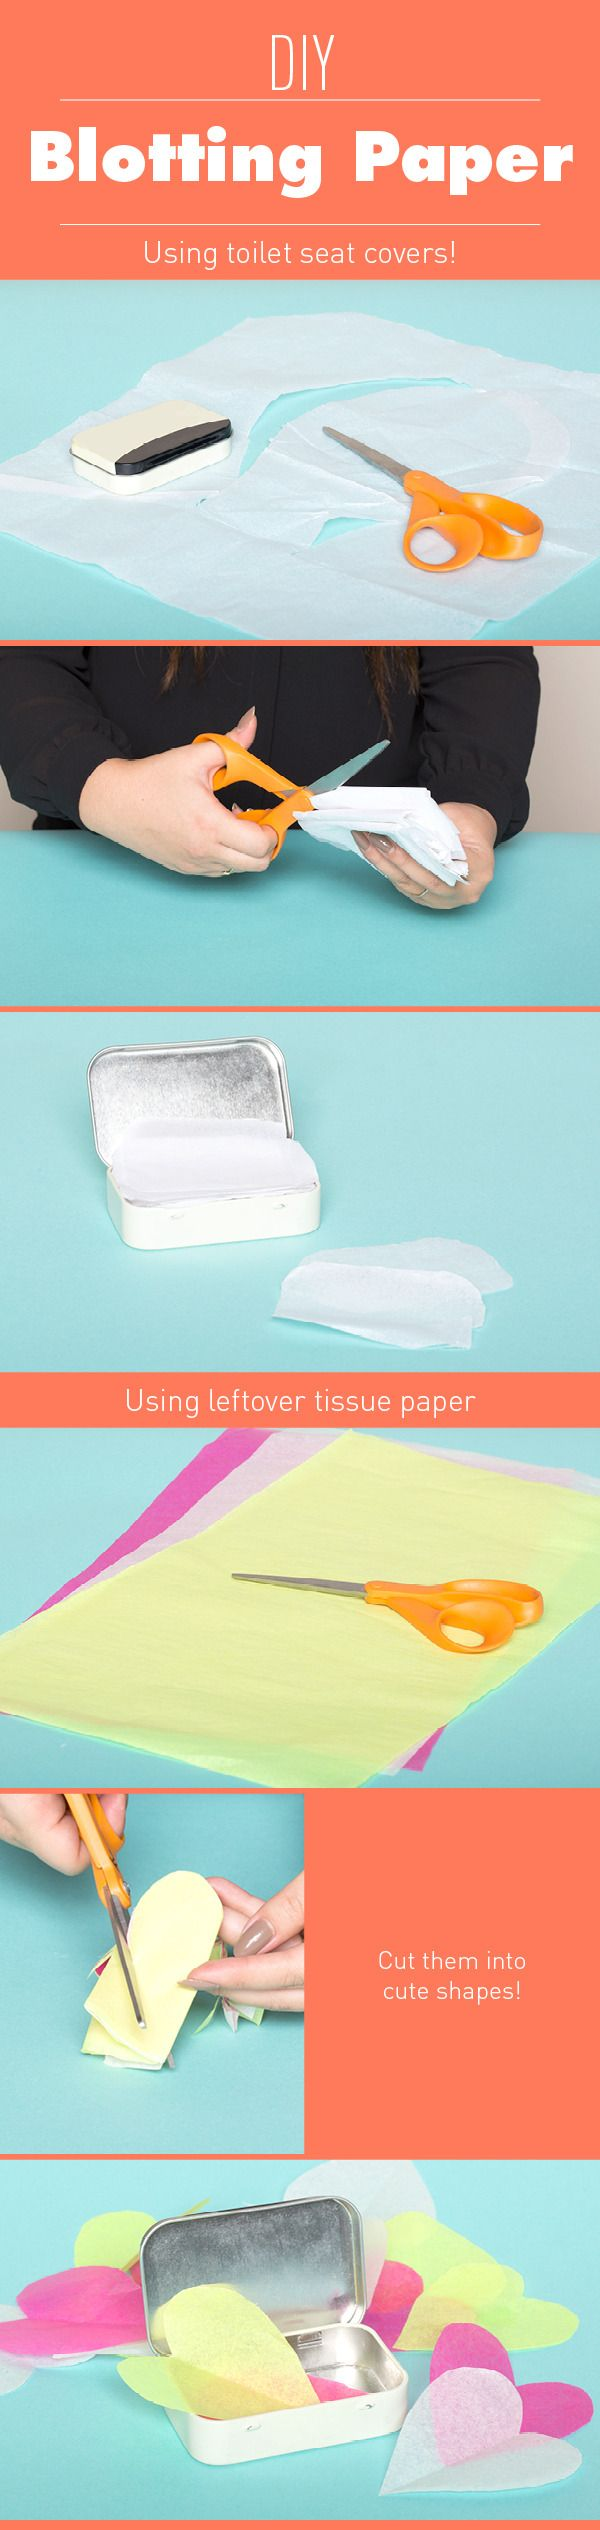 DIY Blotting Papers